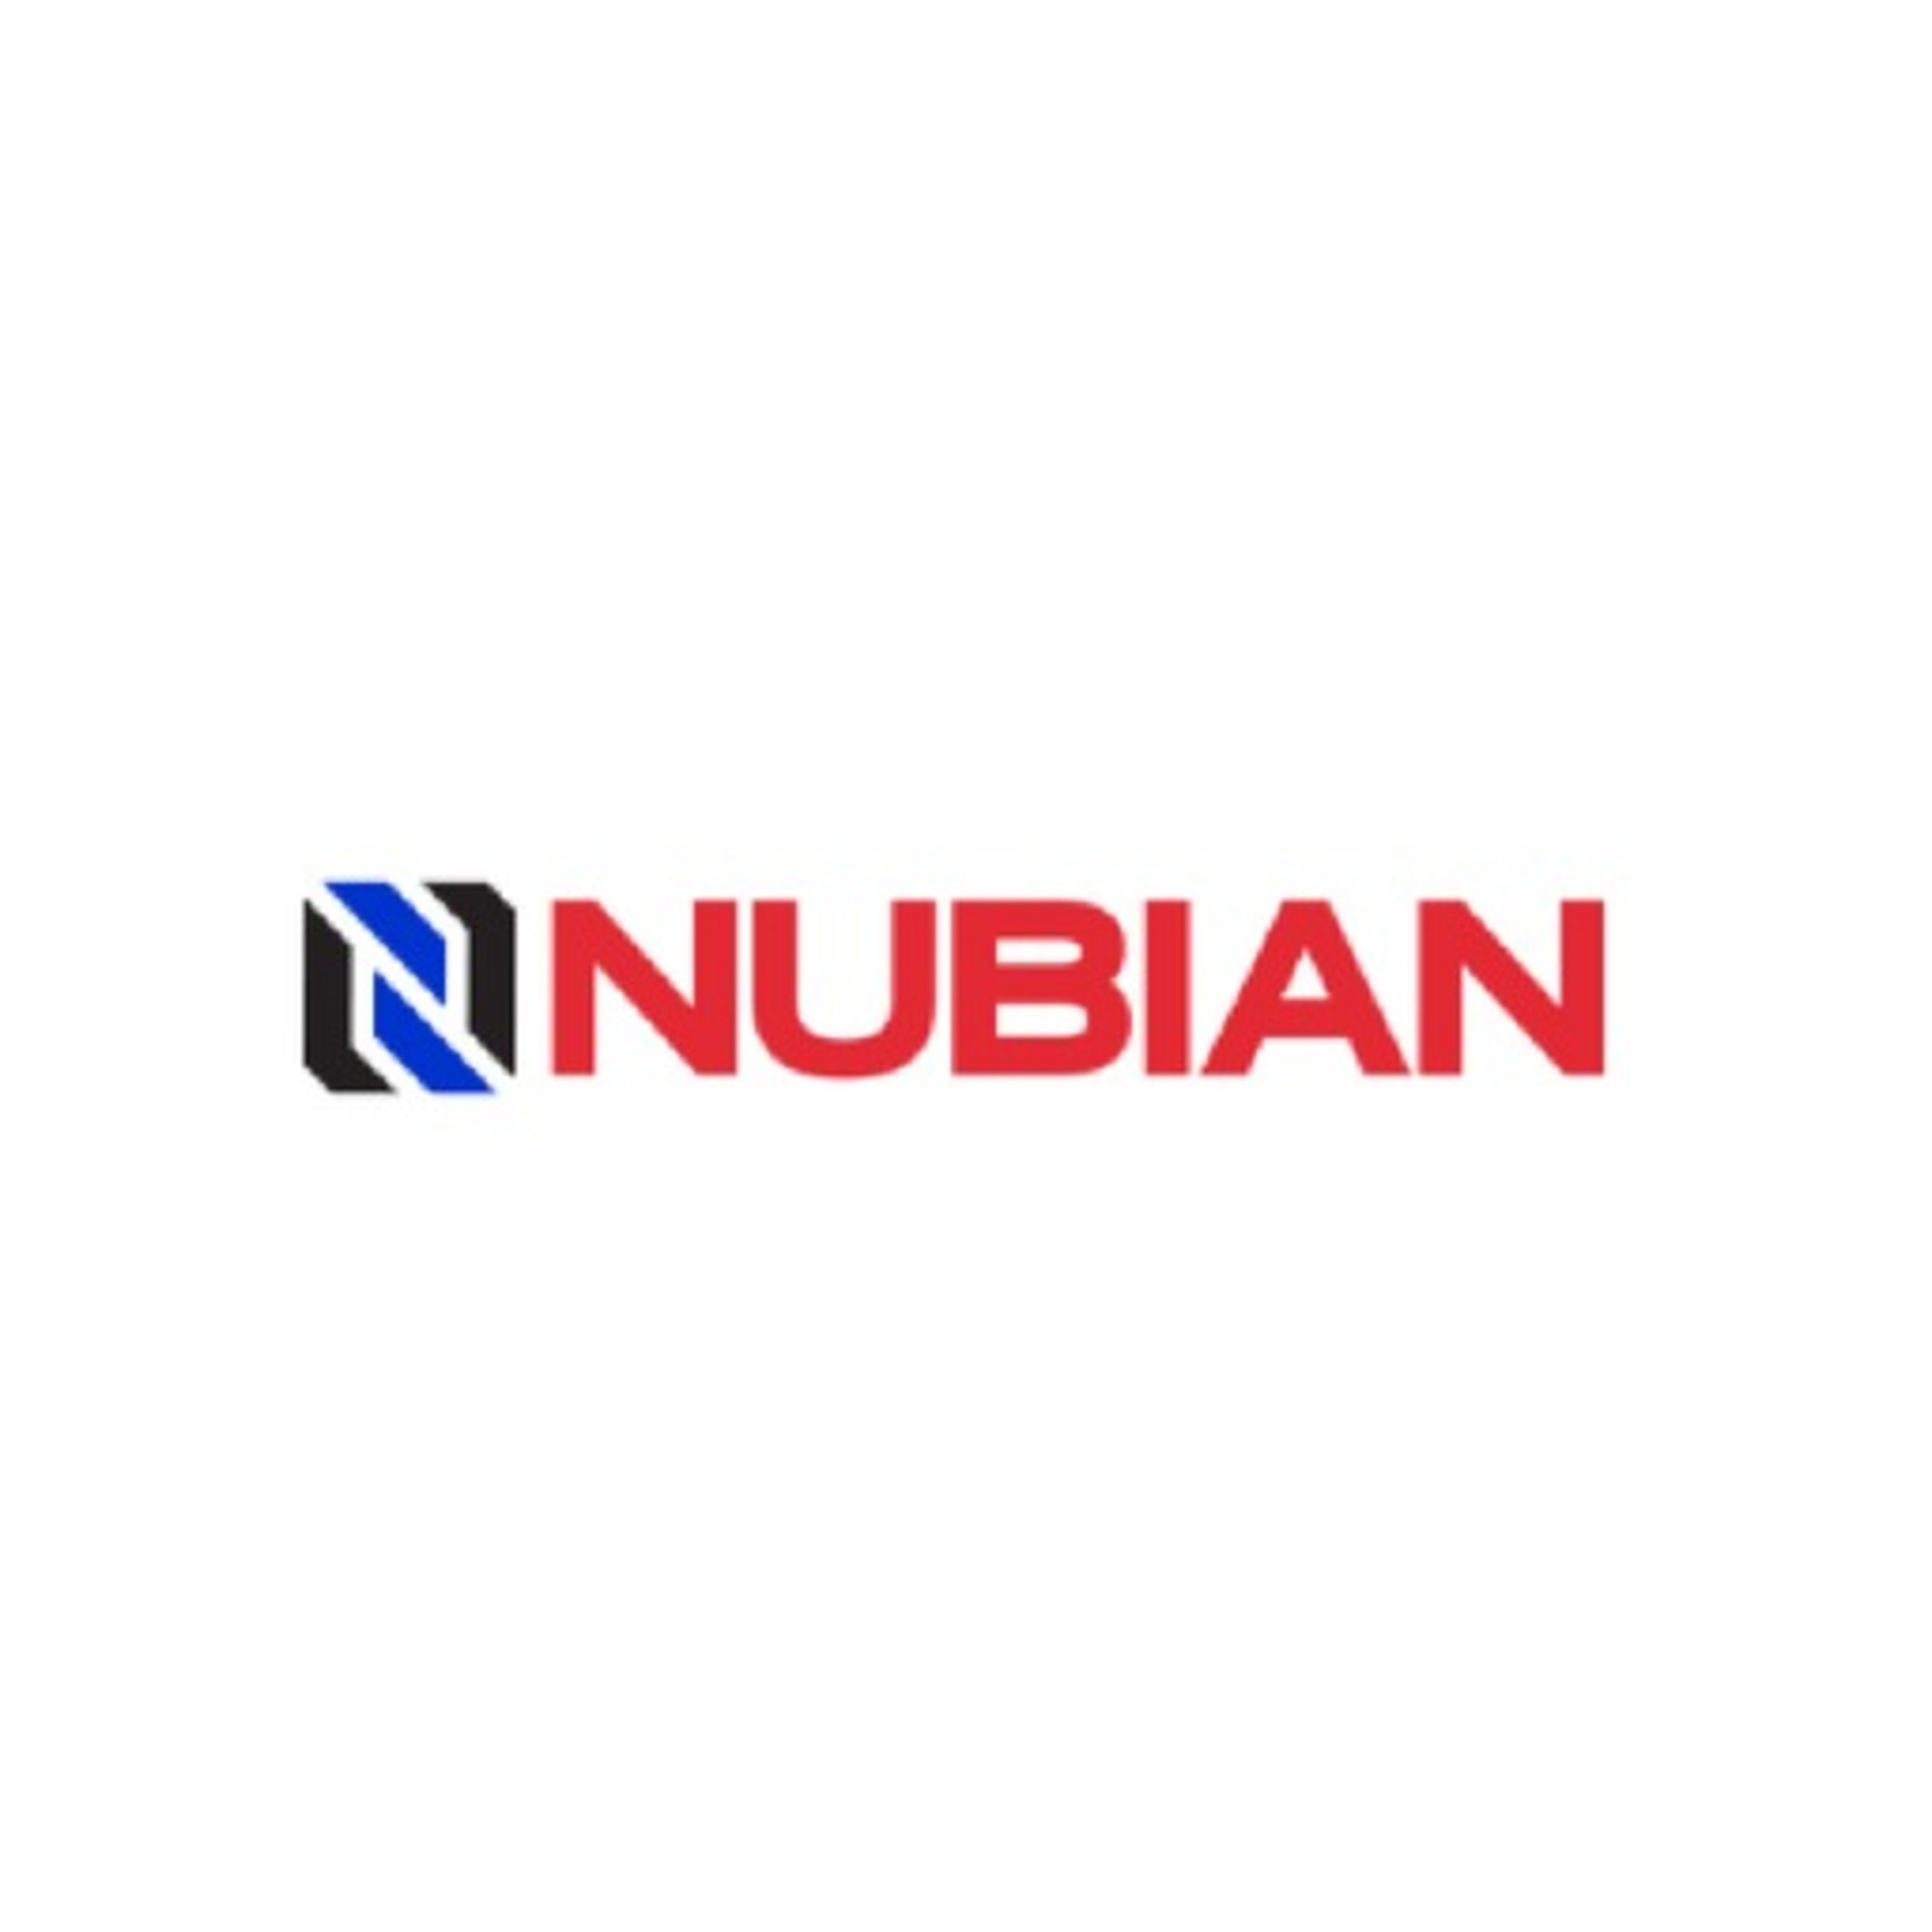 Nubian Closes Private Placement Fully Subscribed